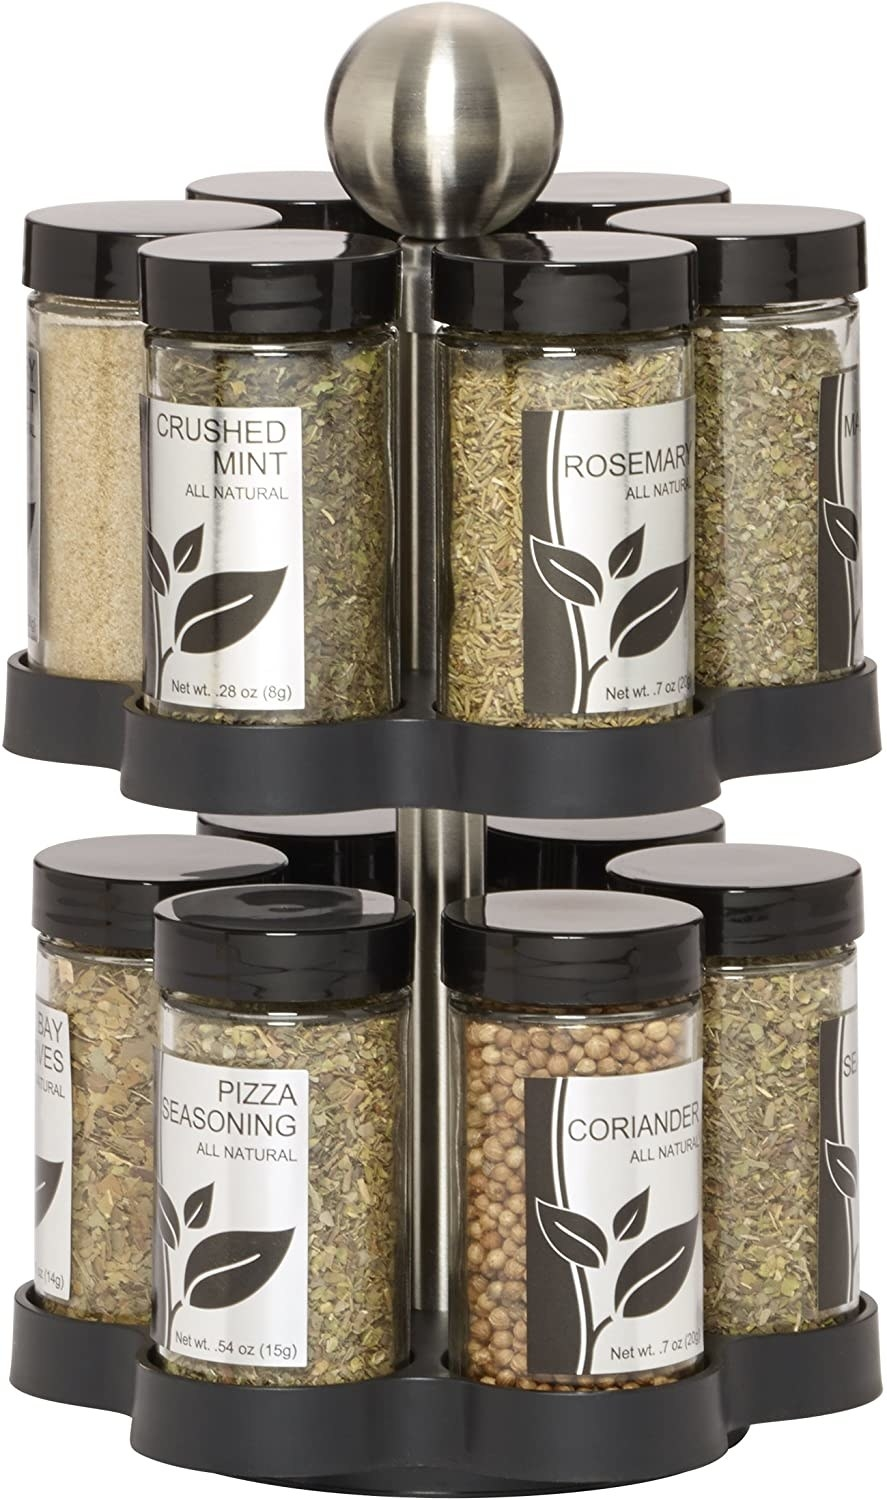 Spices in a carousel